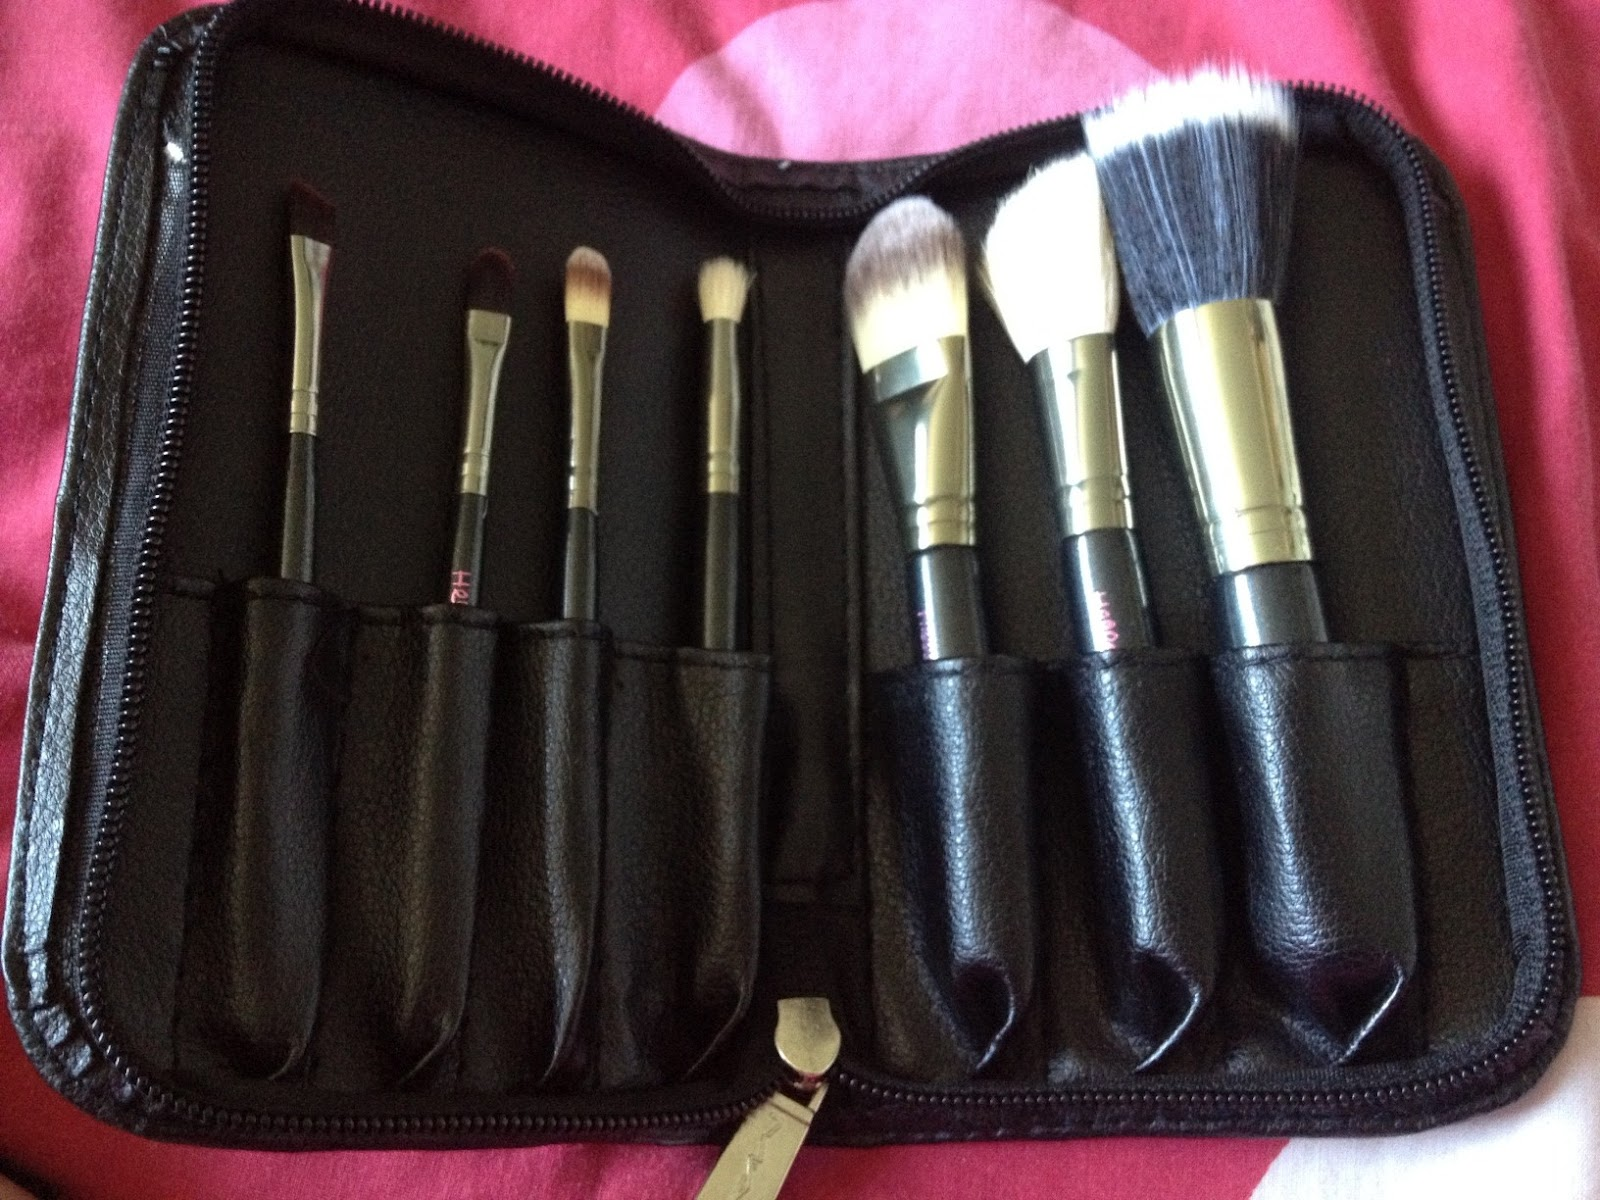 Describing Beauty Birthday Haul Review Fake Mac Hello Kitty Brushes Kuas Kabuki All The Came With A Protective Cover But I Took It Off Because You Couldnt See Properly